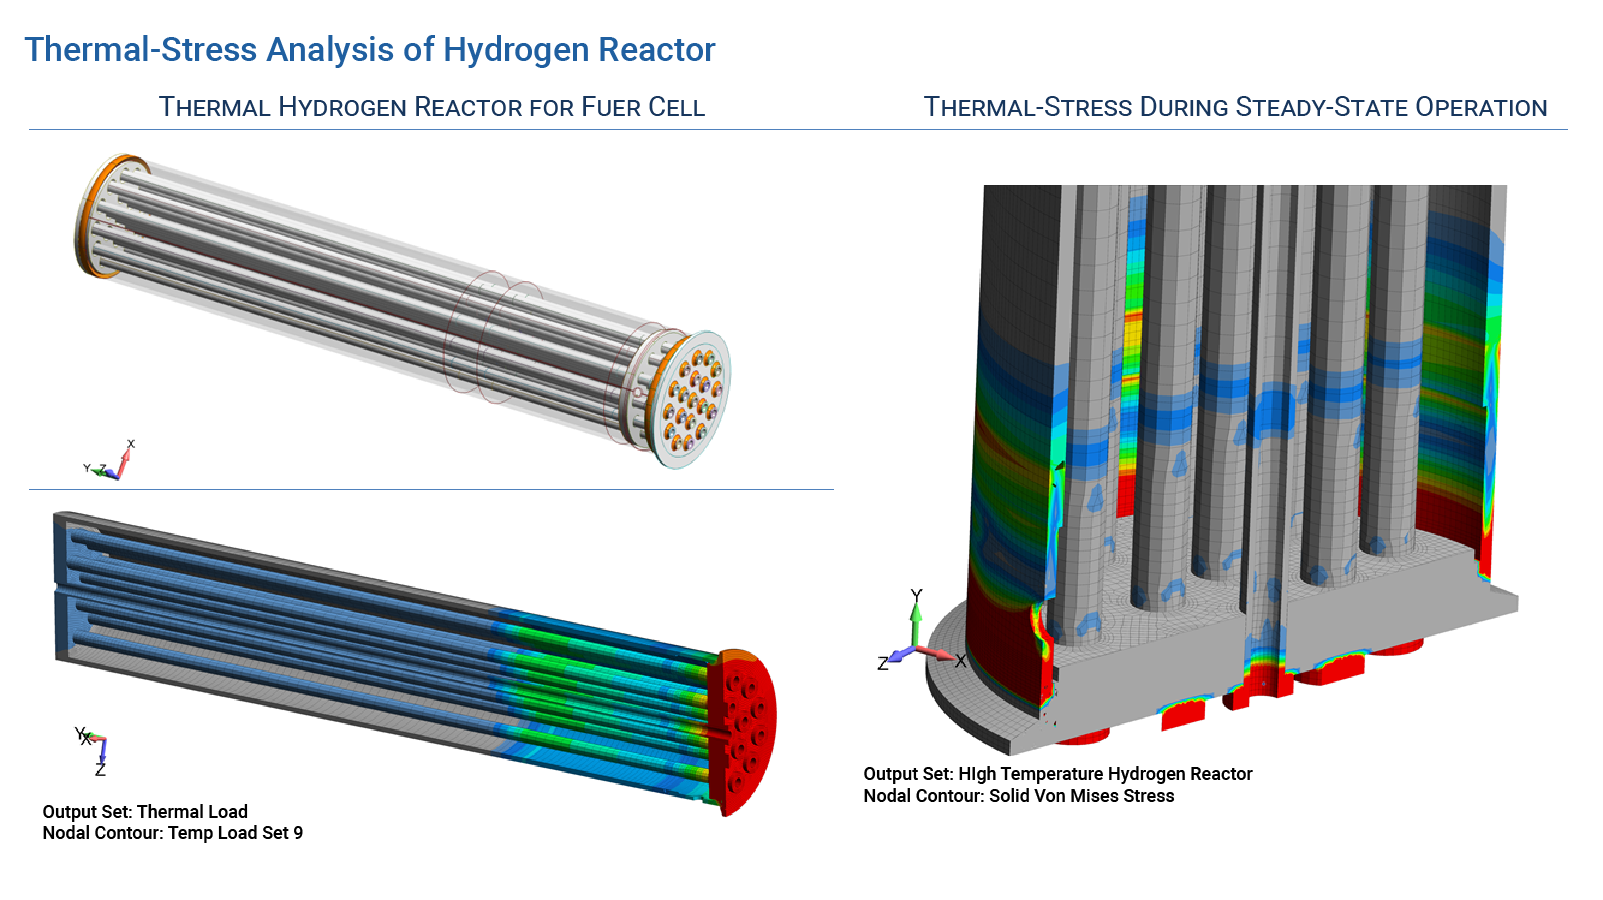 Thermal-Stress Analysis of Hydrogen Reactor - FEA Consulting Service